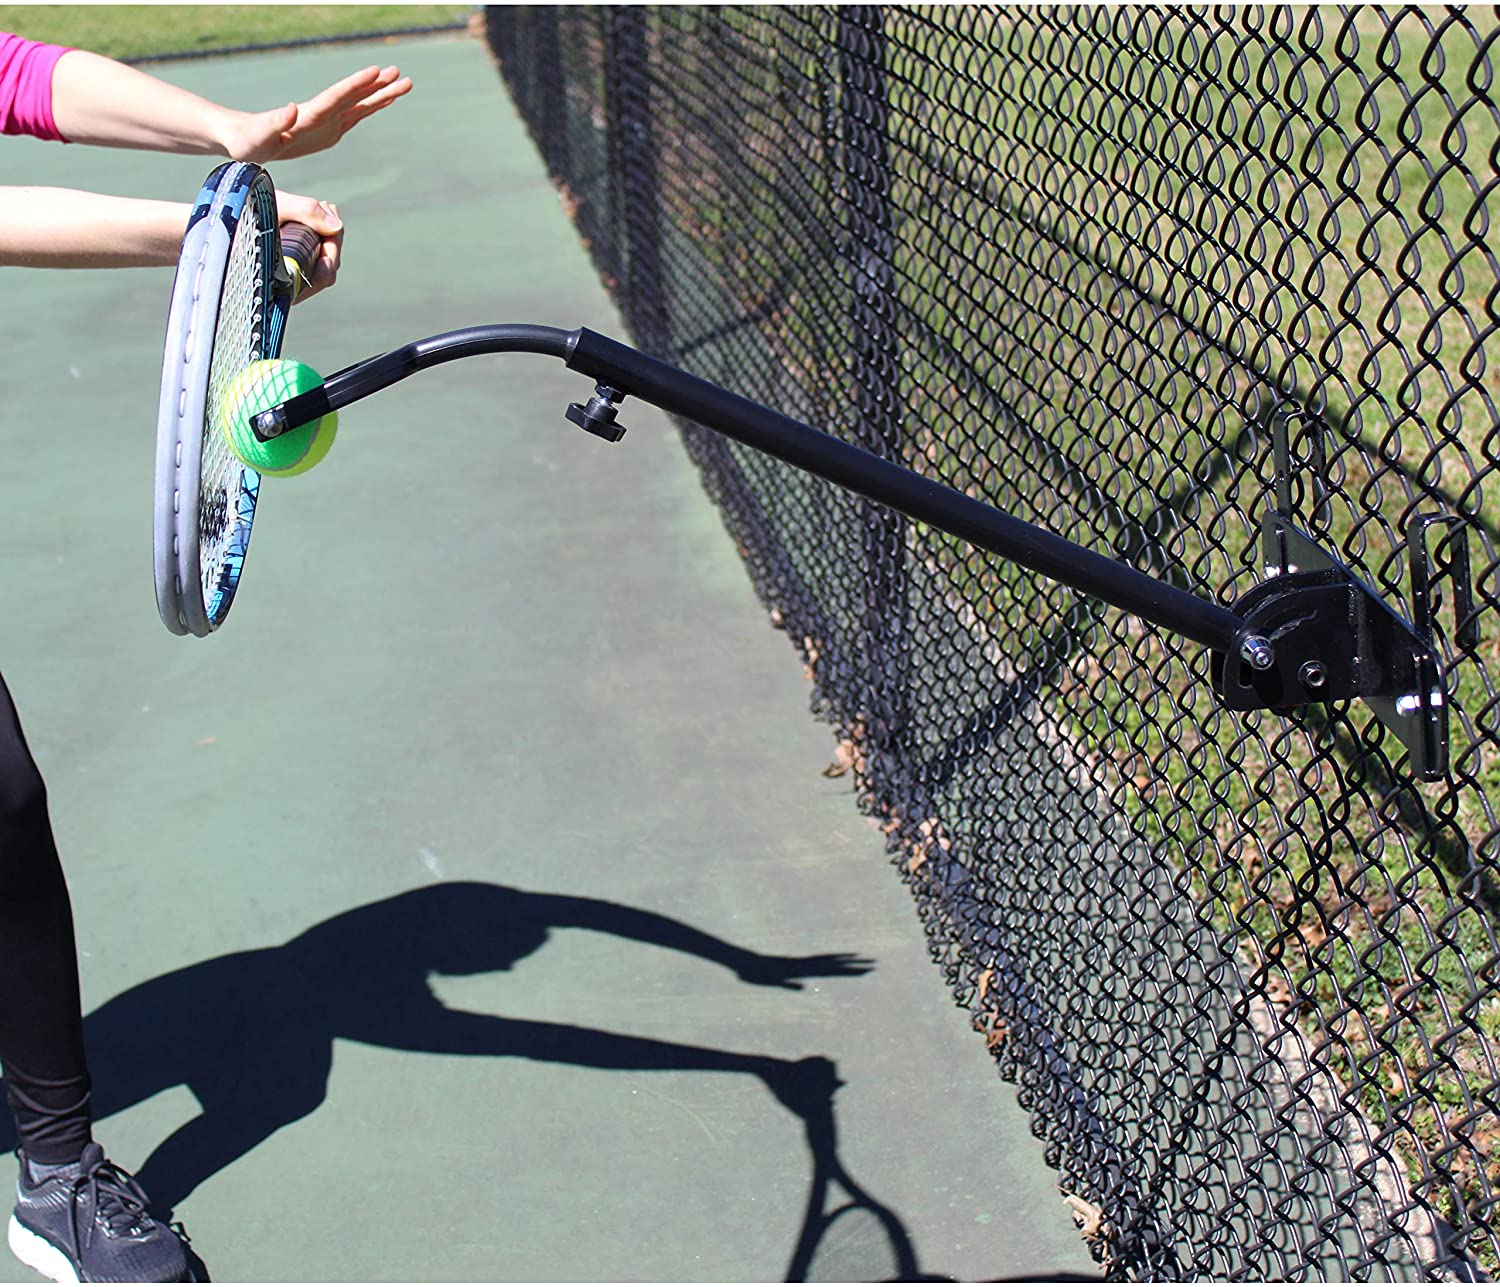 TopSpin Solution - Tennis Training Aid | Practice Nearly All Shots in Tennis Anywhere | Attaches Indoors & Outdoors | All Ages and Skill Levels | Players and Coaches : Sports & Outdoors